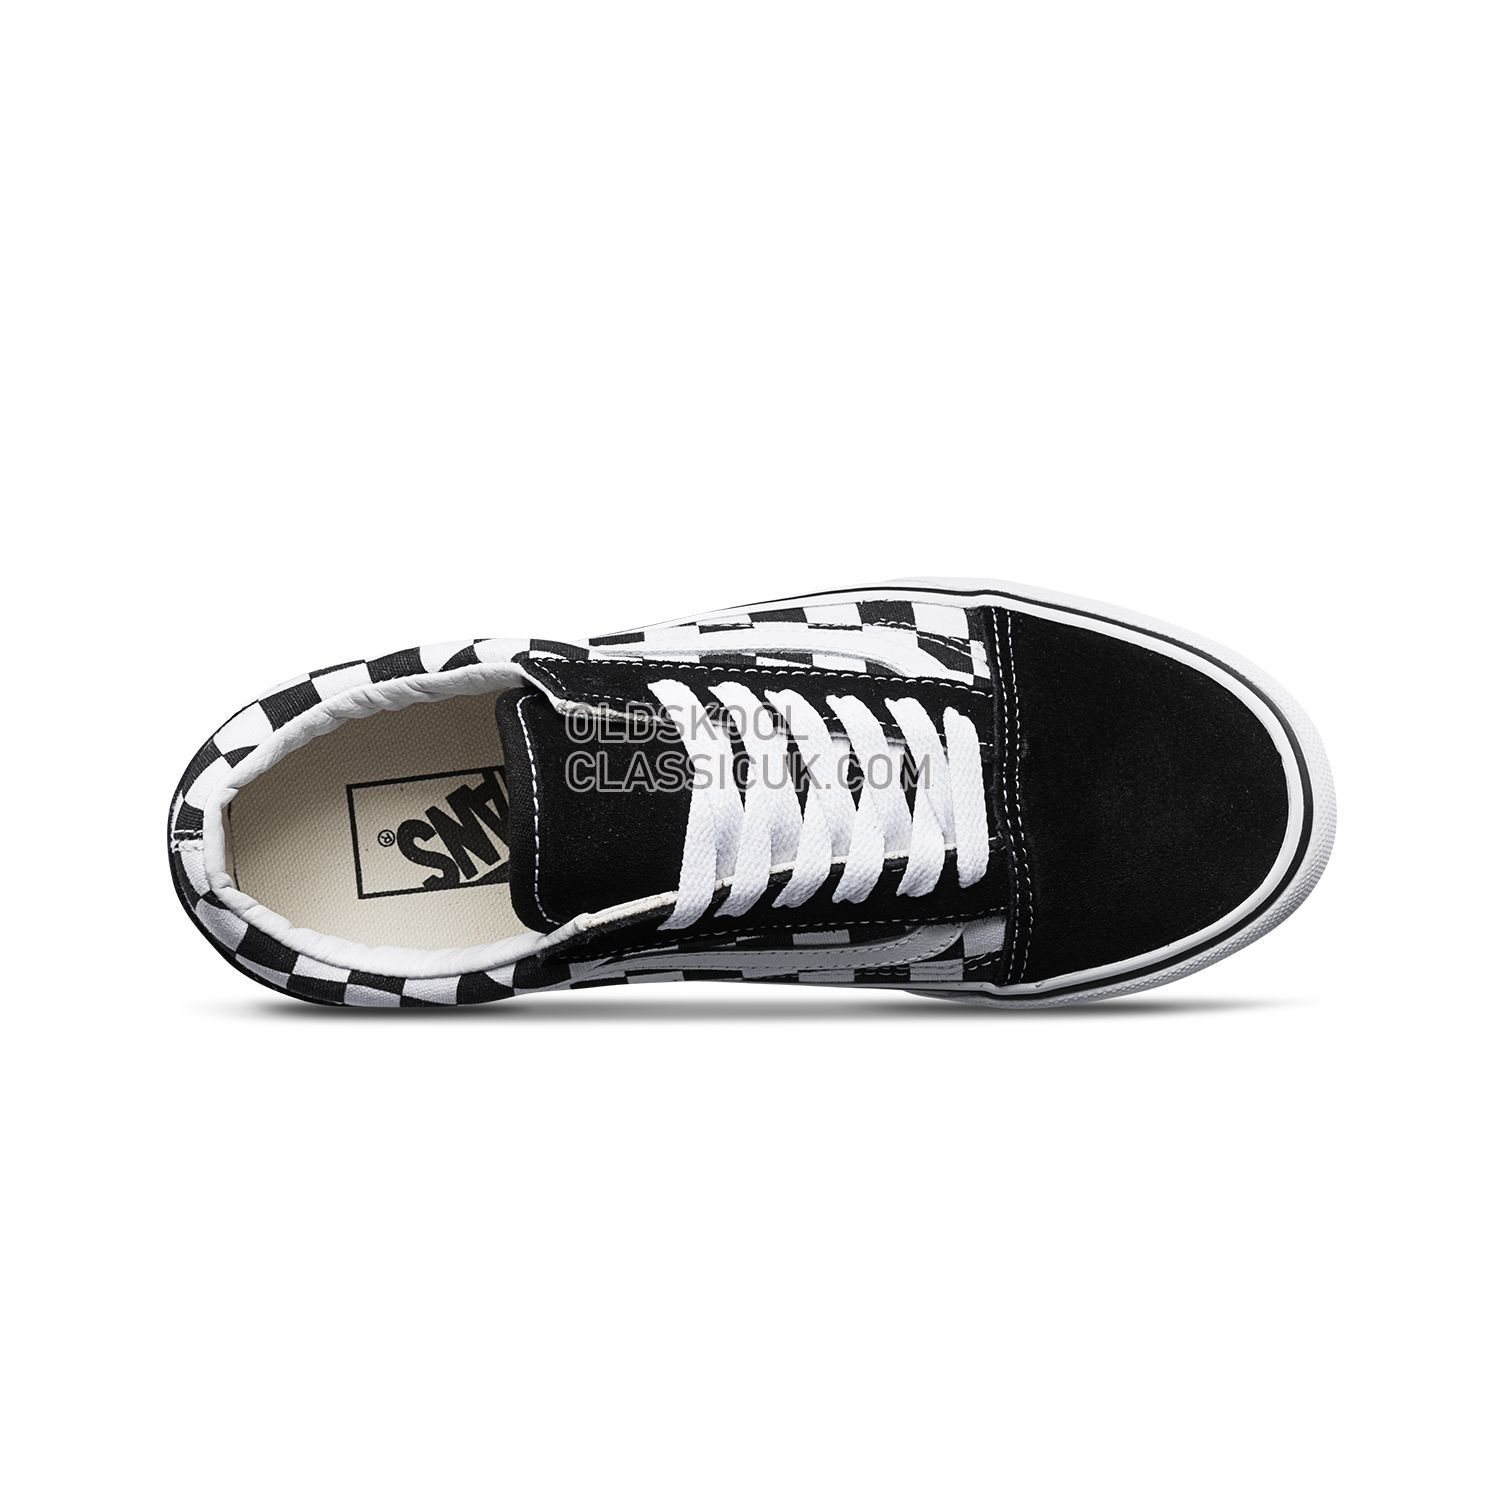 Vans Checkerboardboard Old Skool Platform Sneakers Mens Womens Unisex Black-True White B3UHRK Shoes